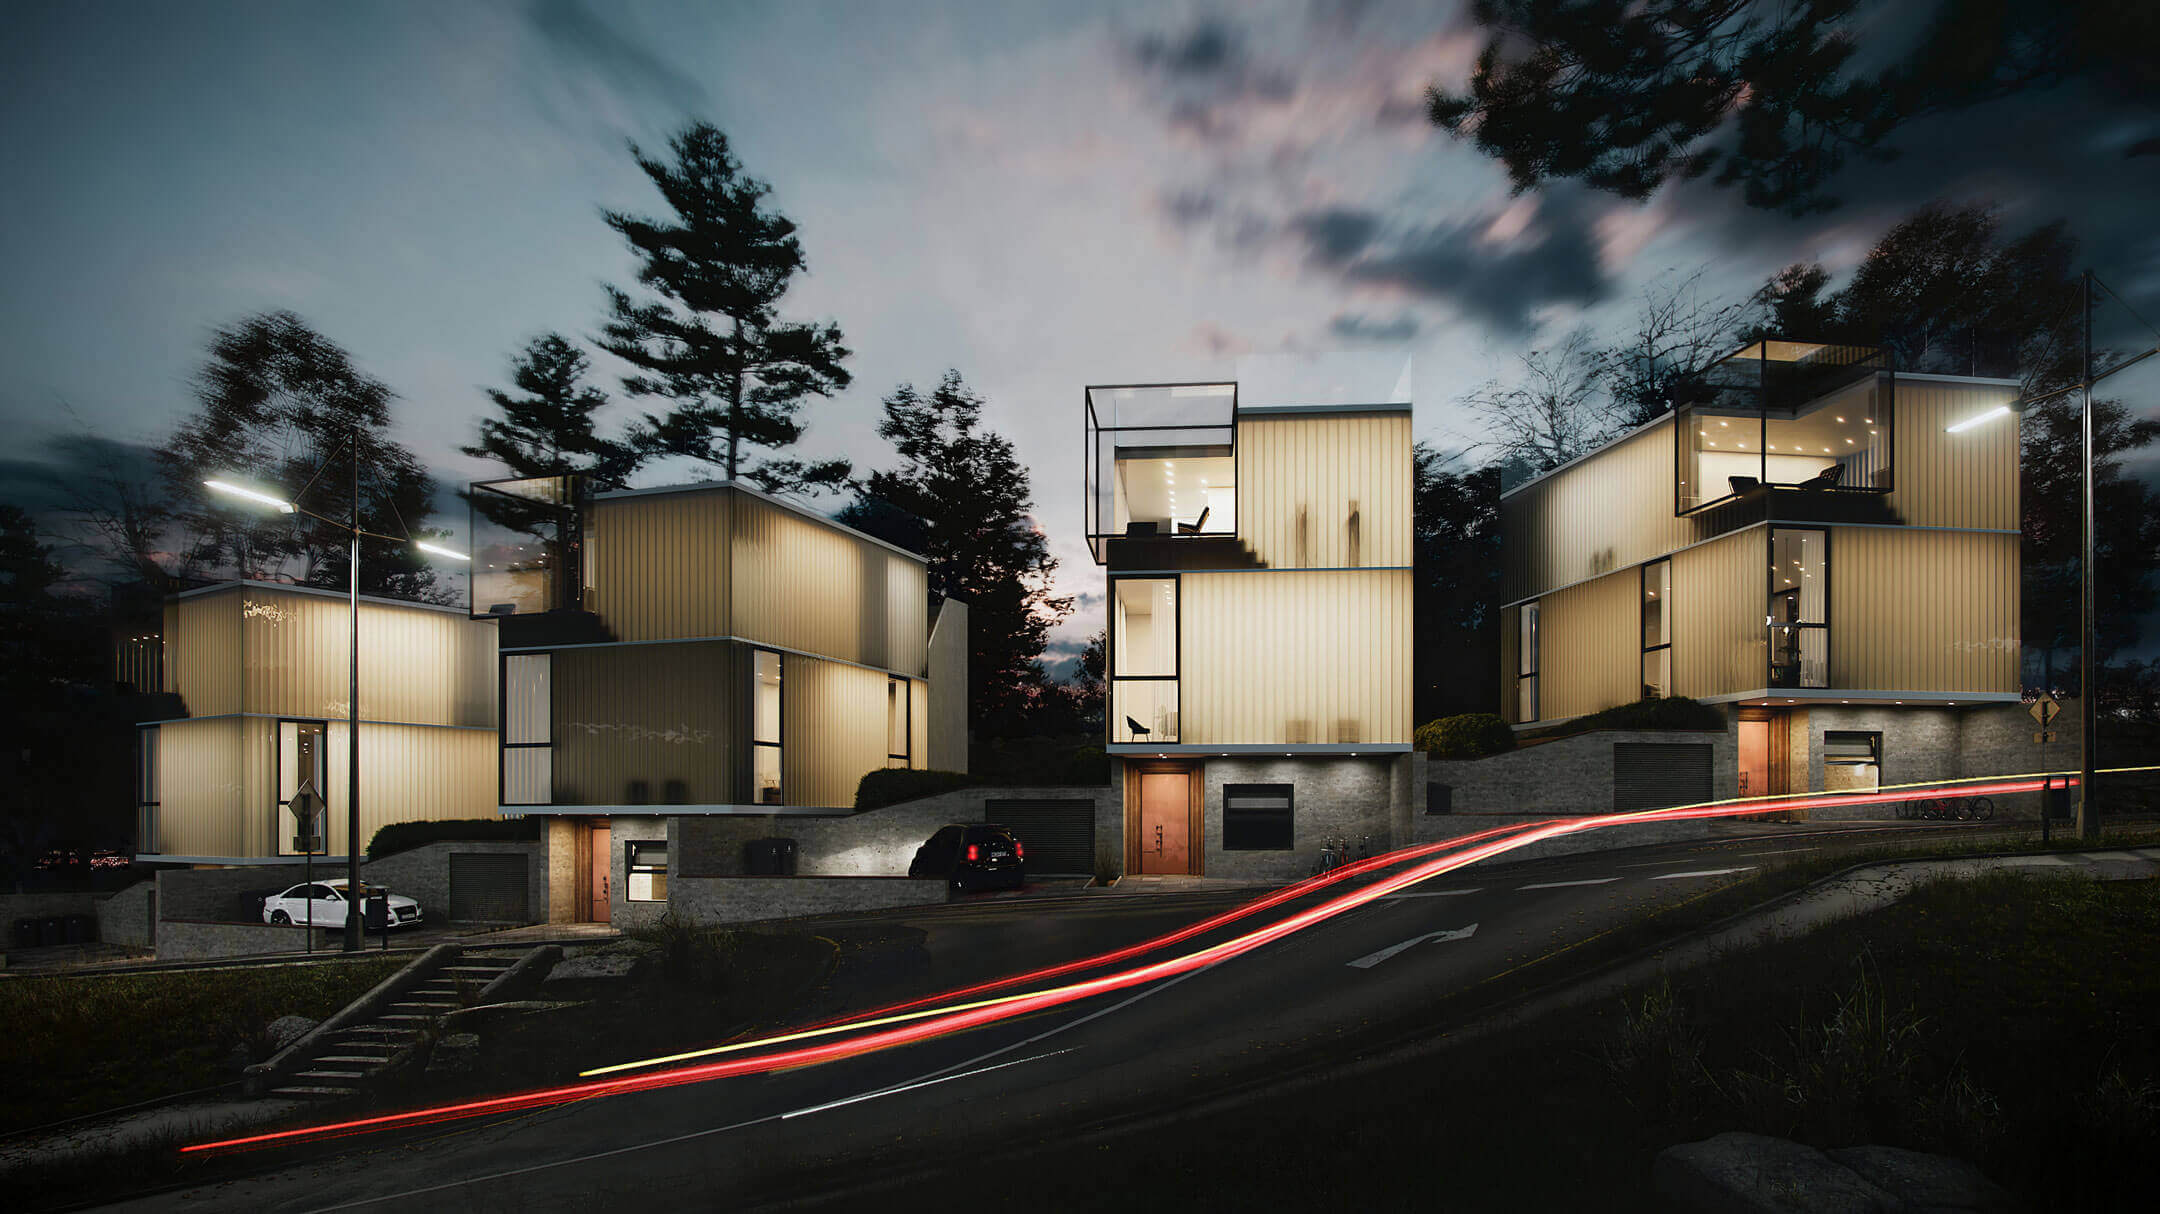 Architectural 3D Rendering Of A Modern Minimalistic Neighbourhood